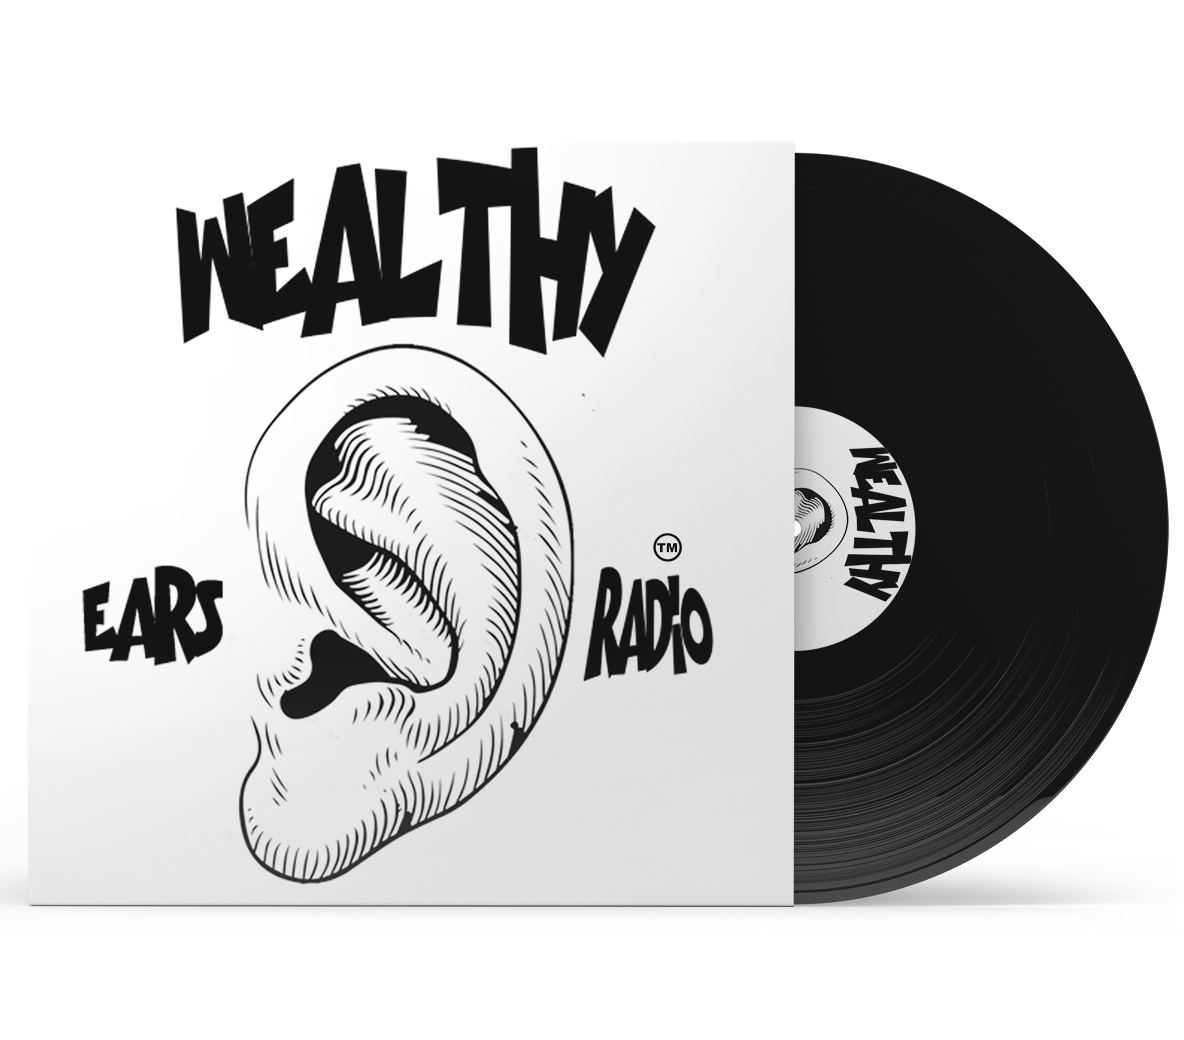 wealthy ears radio record